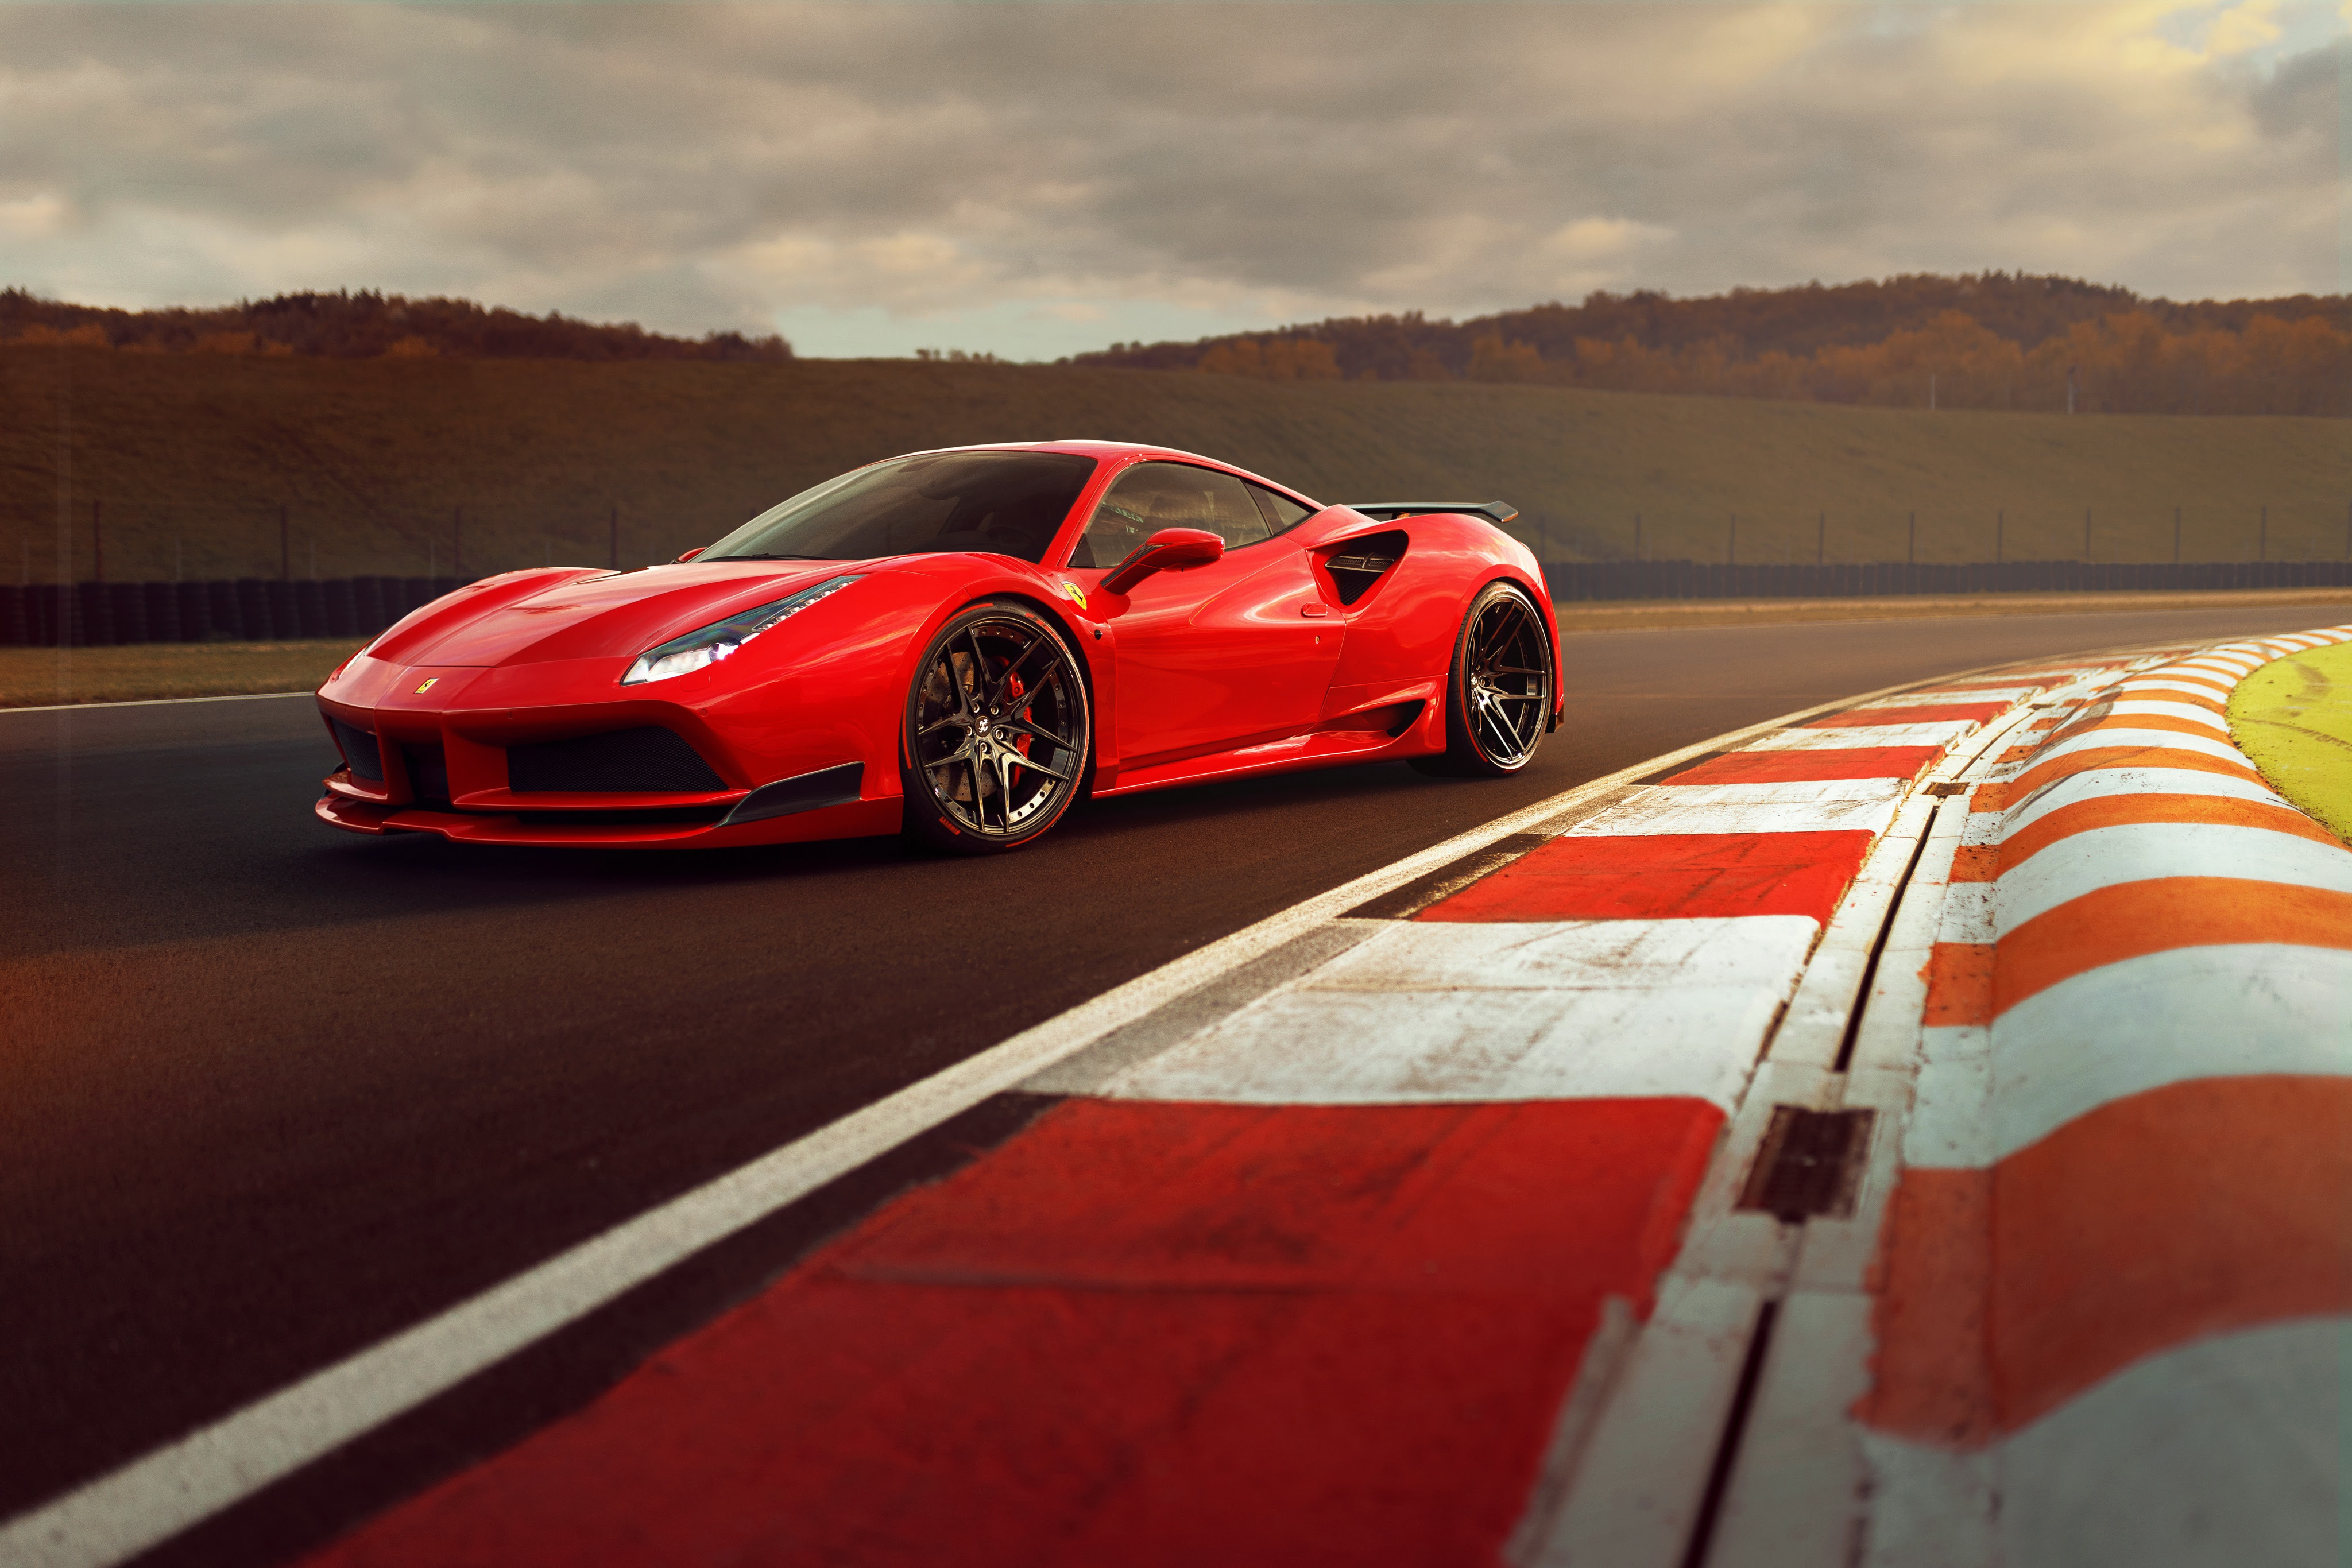 Ferrari 488 Gtb 4k, HD Cars, 4k Wallpapers, Images, Backgrounds, Photos and Pictures